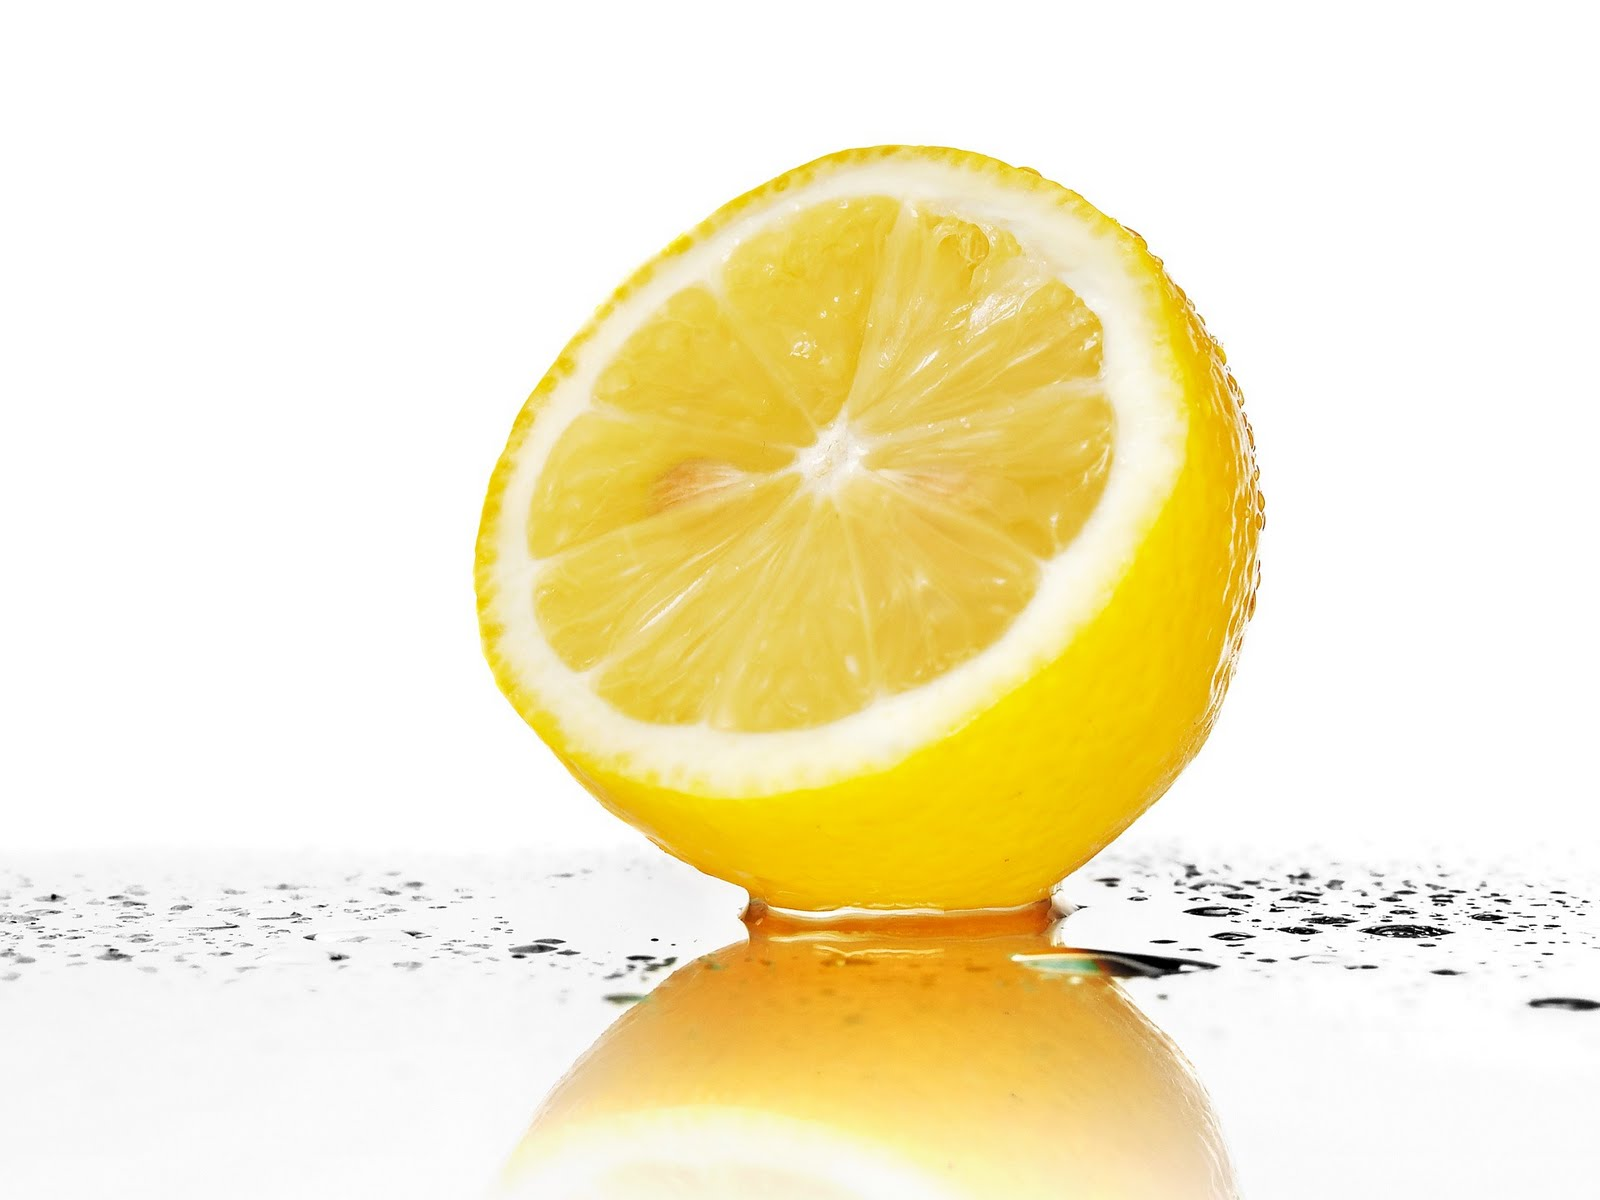 Lemon Power Some Unusual Green Cleaning Tips The Art Of